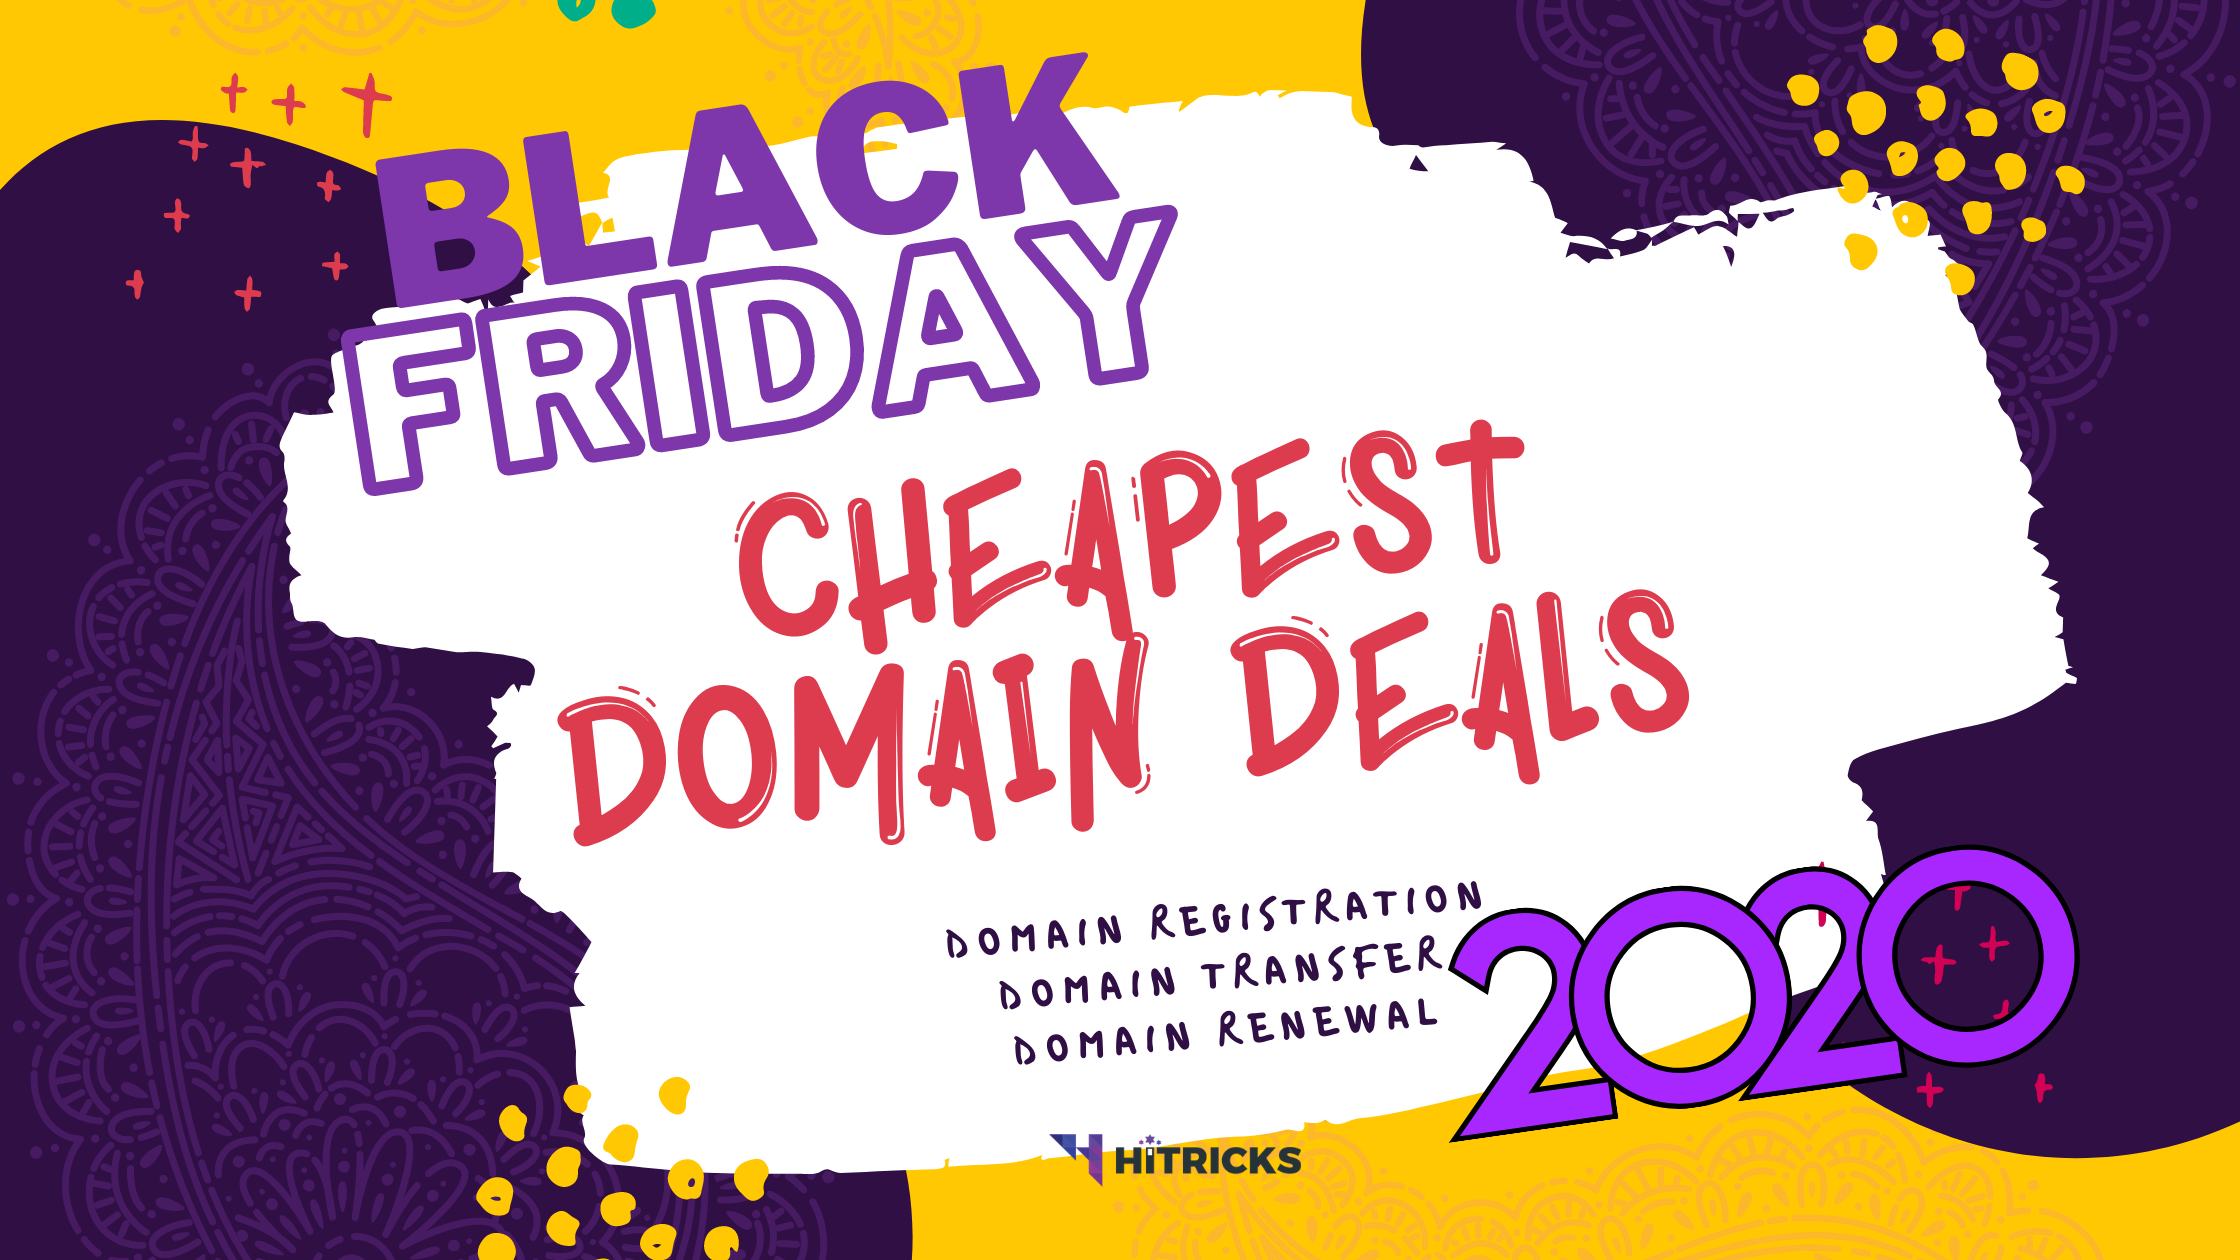 Black Friday 2020: Domain Registration & Transfer Deals